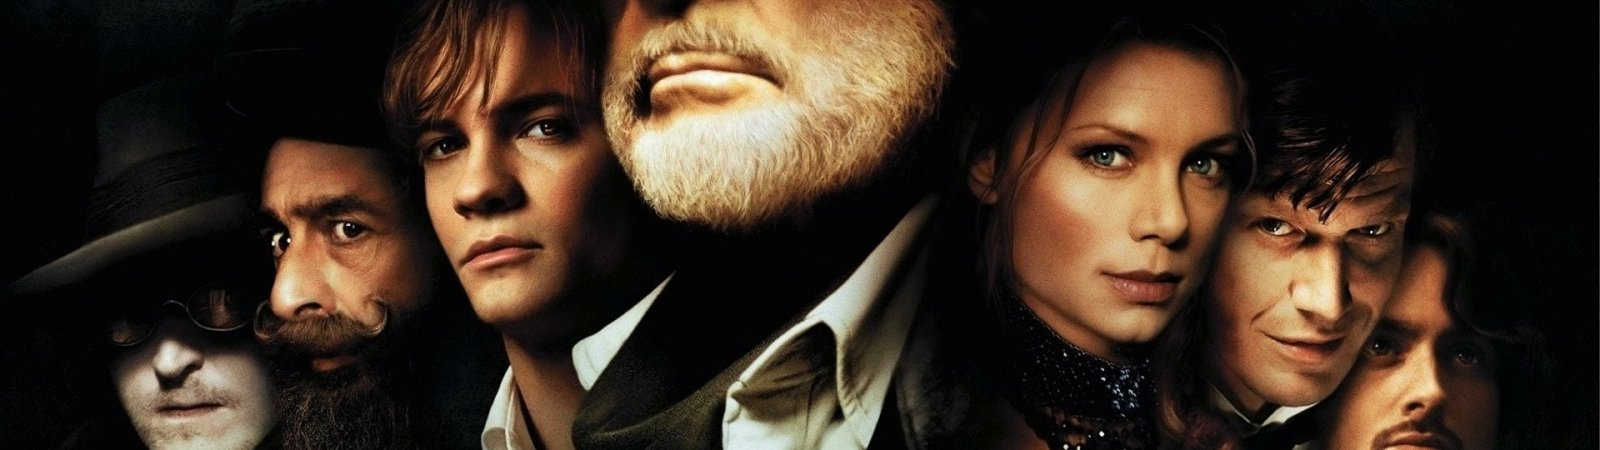 Photo du film : La ligue des gentlemen extraordinaires